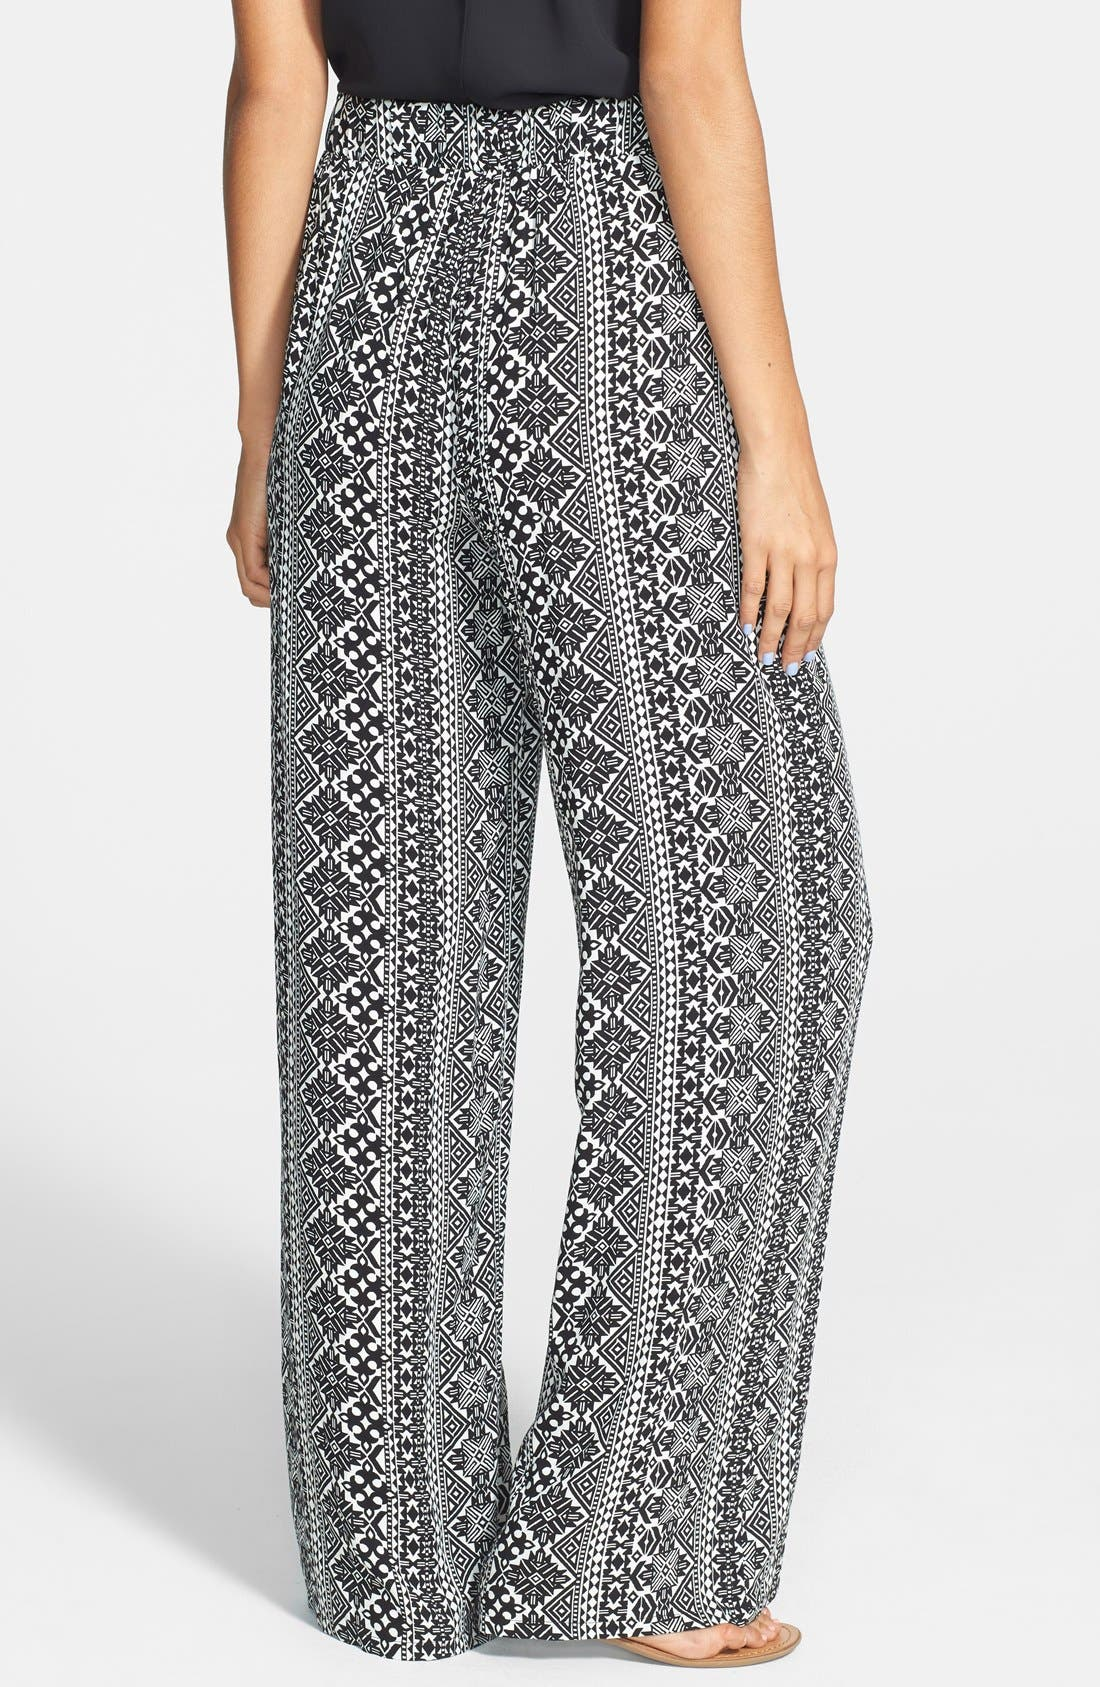 Alternate Image 2  - Socialite Print Palazzo Pants (Juniors)